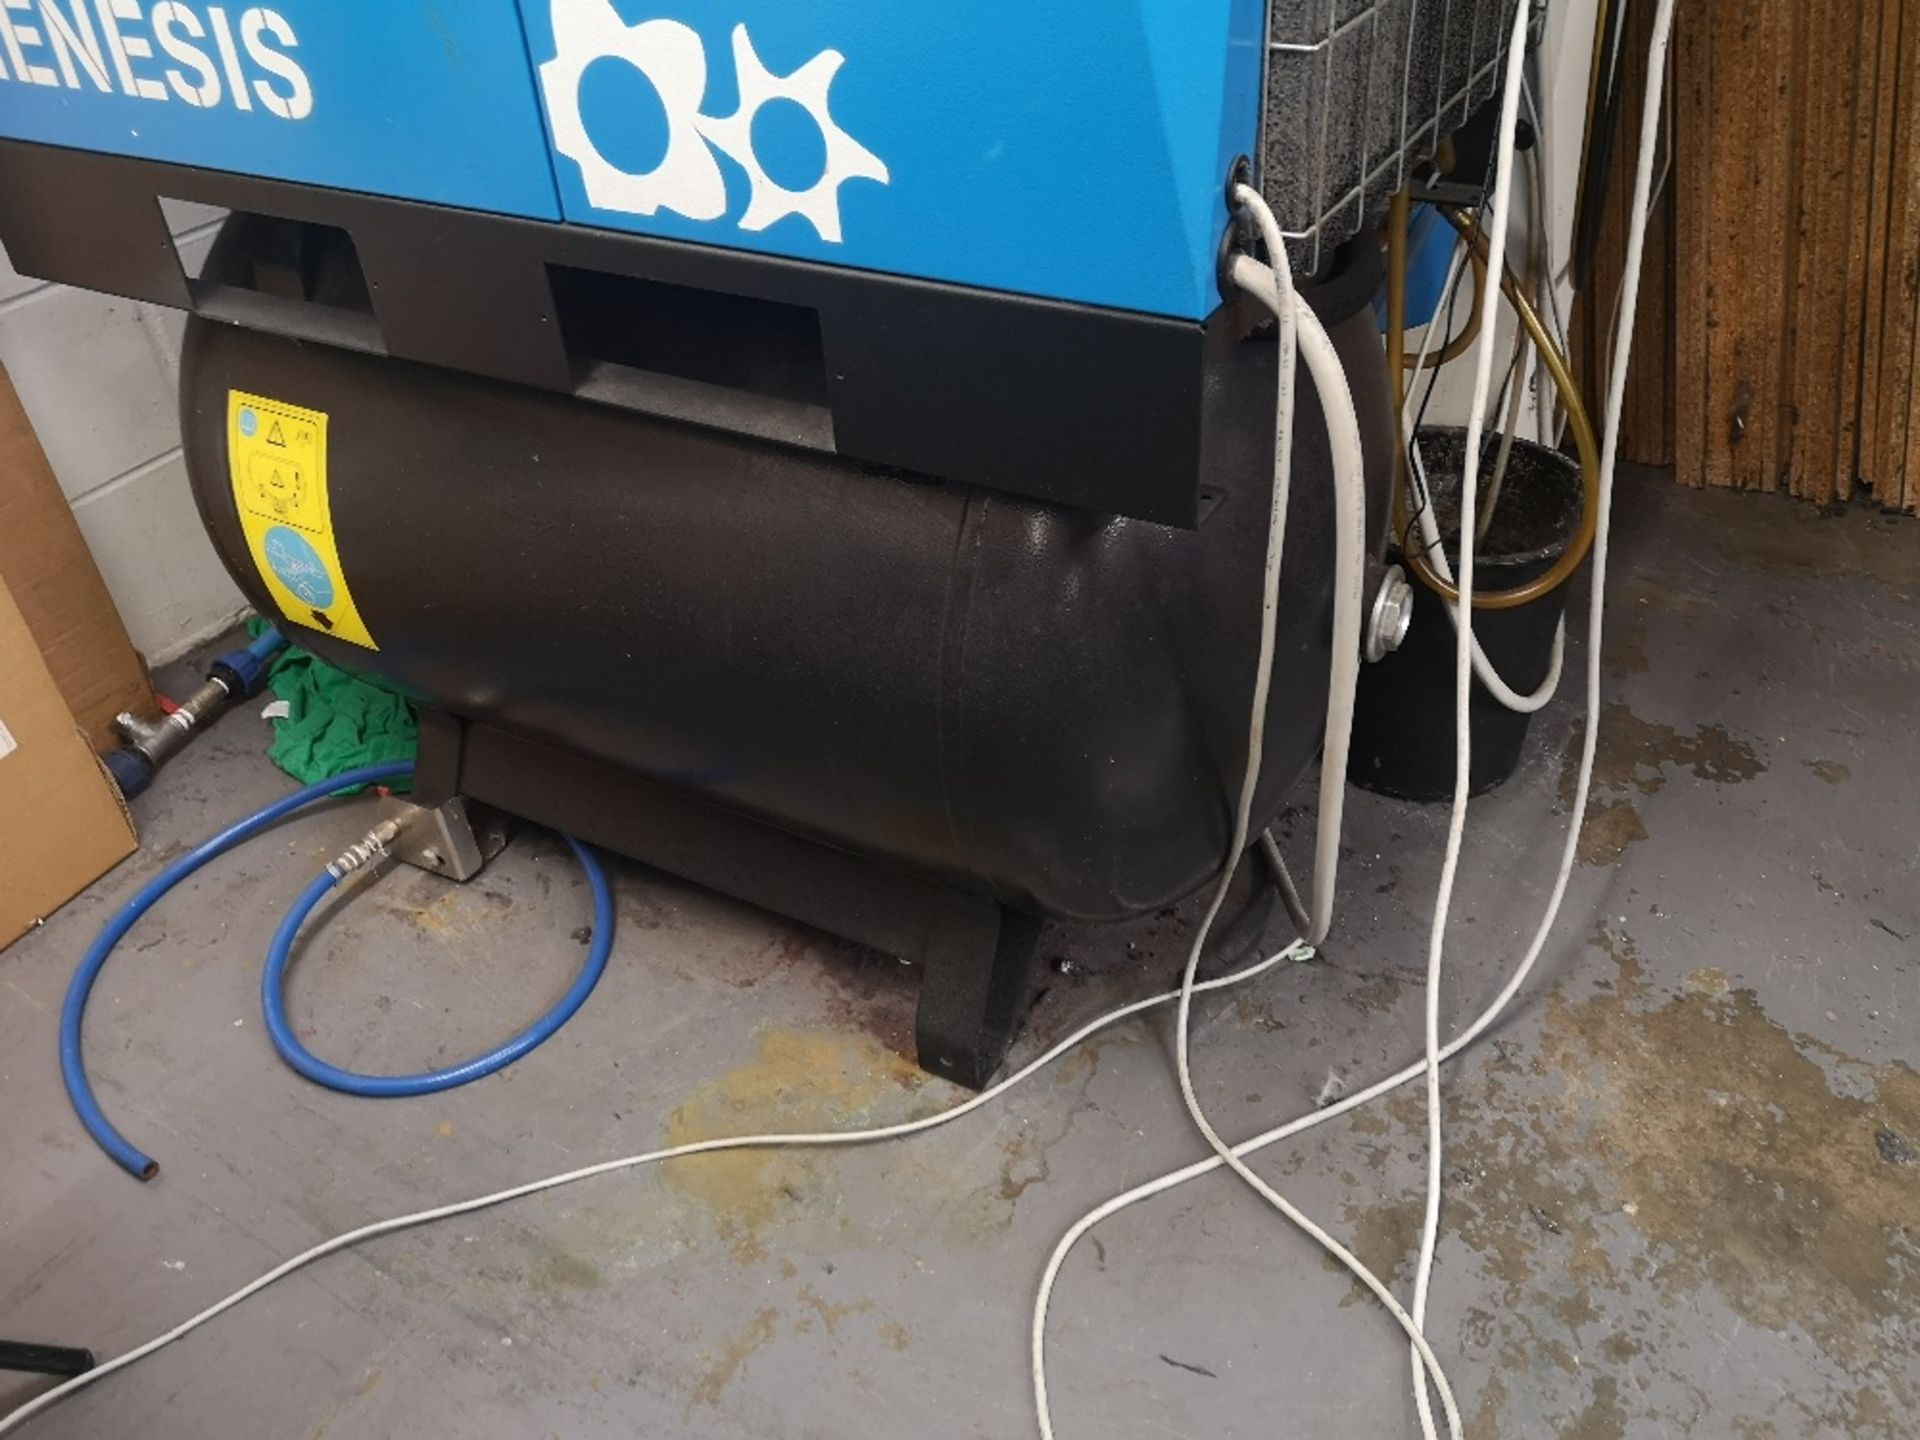 ABAC GENESIS 11 270 Variable Speed Rotary Screw Air Compressor - Image 3 of 6